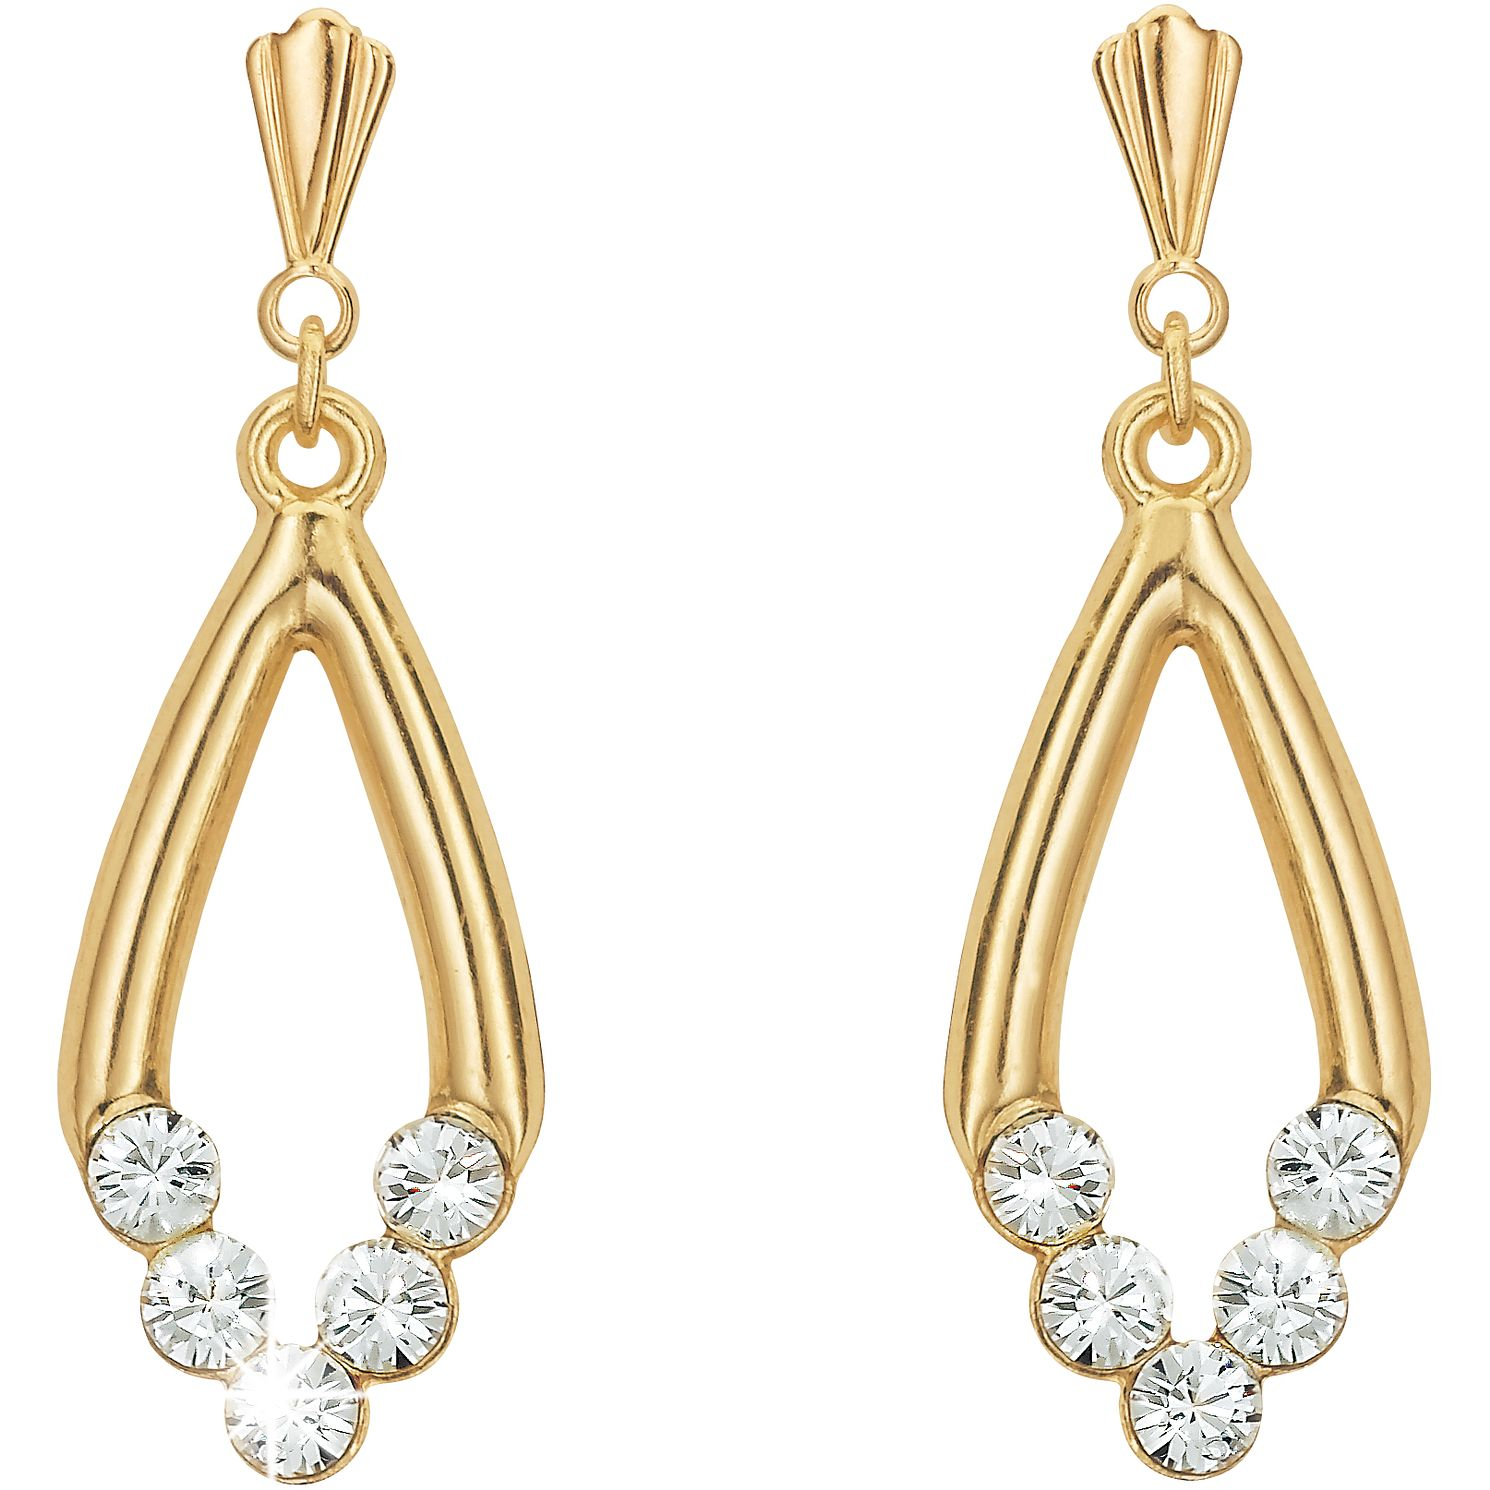 9ct Gold Oval Crystal Drop Earrings - Product number 4668626